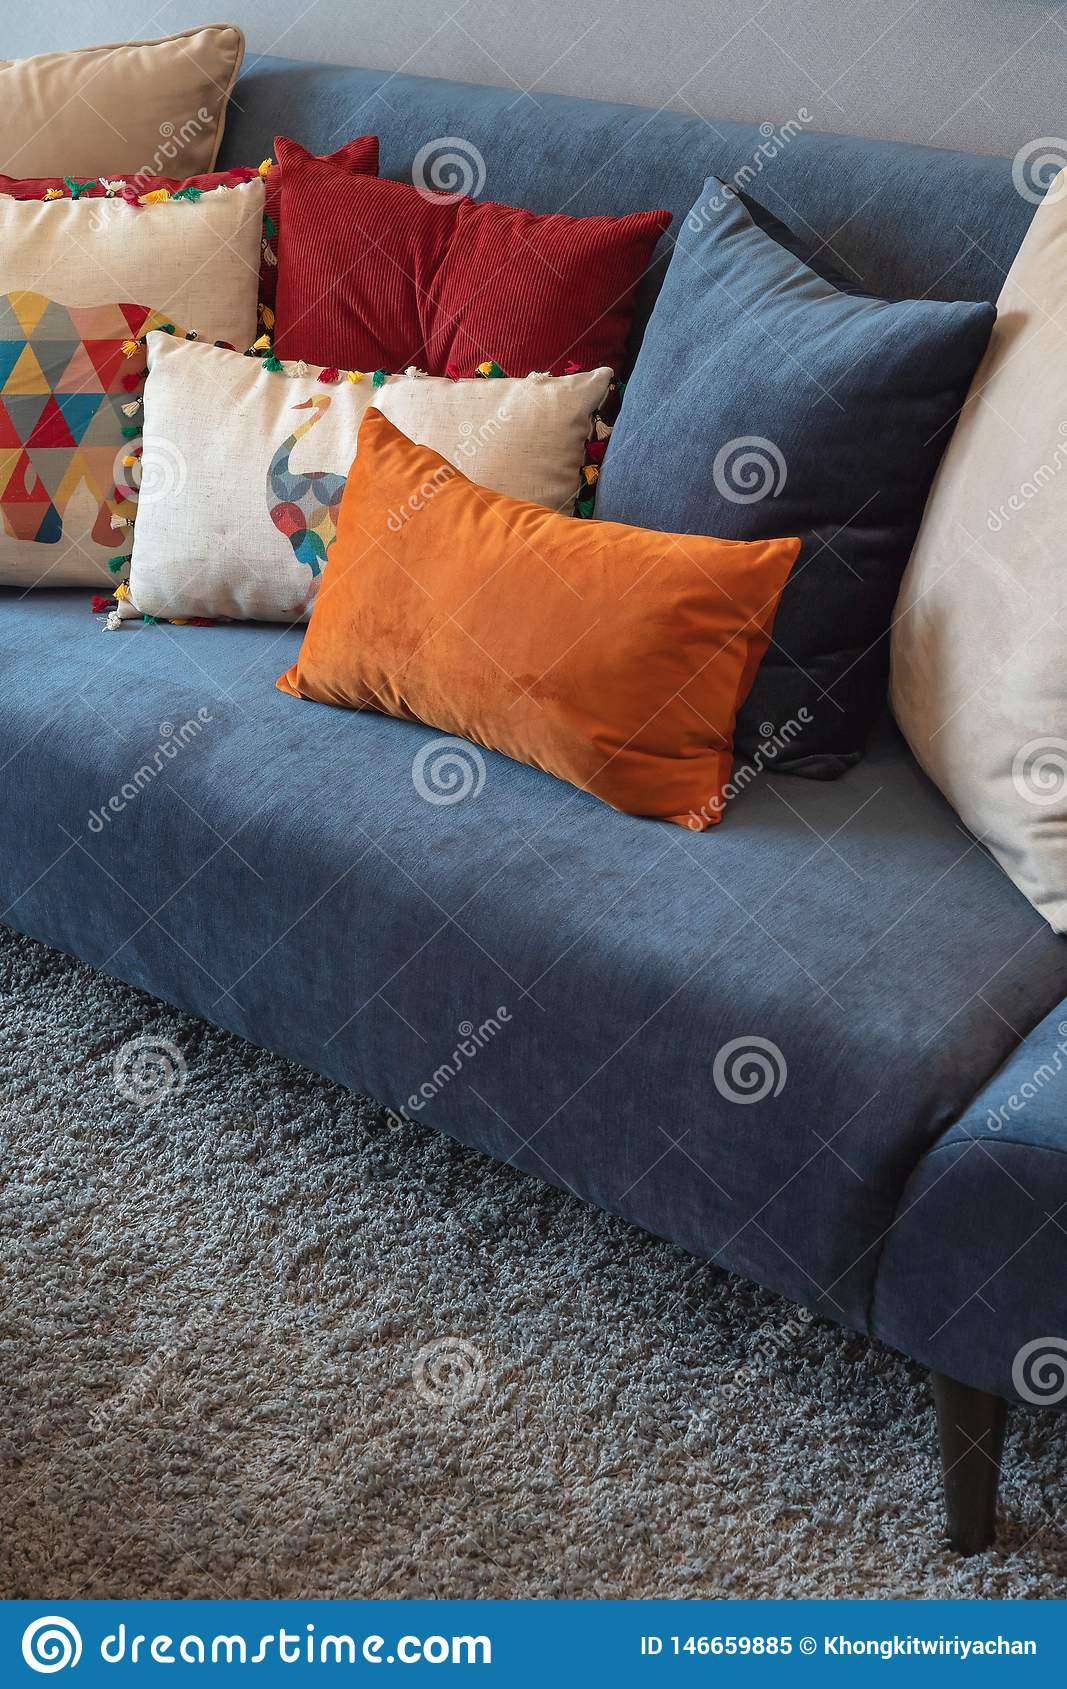 Modern Blue Sofa With Colorful Pillows Stock Image Image Of Pillow Light 146659885